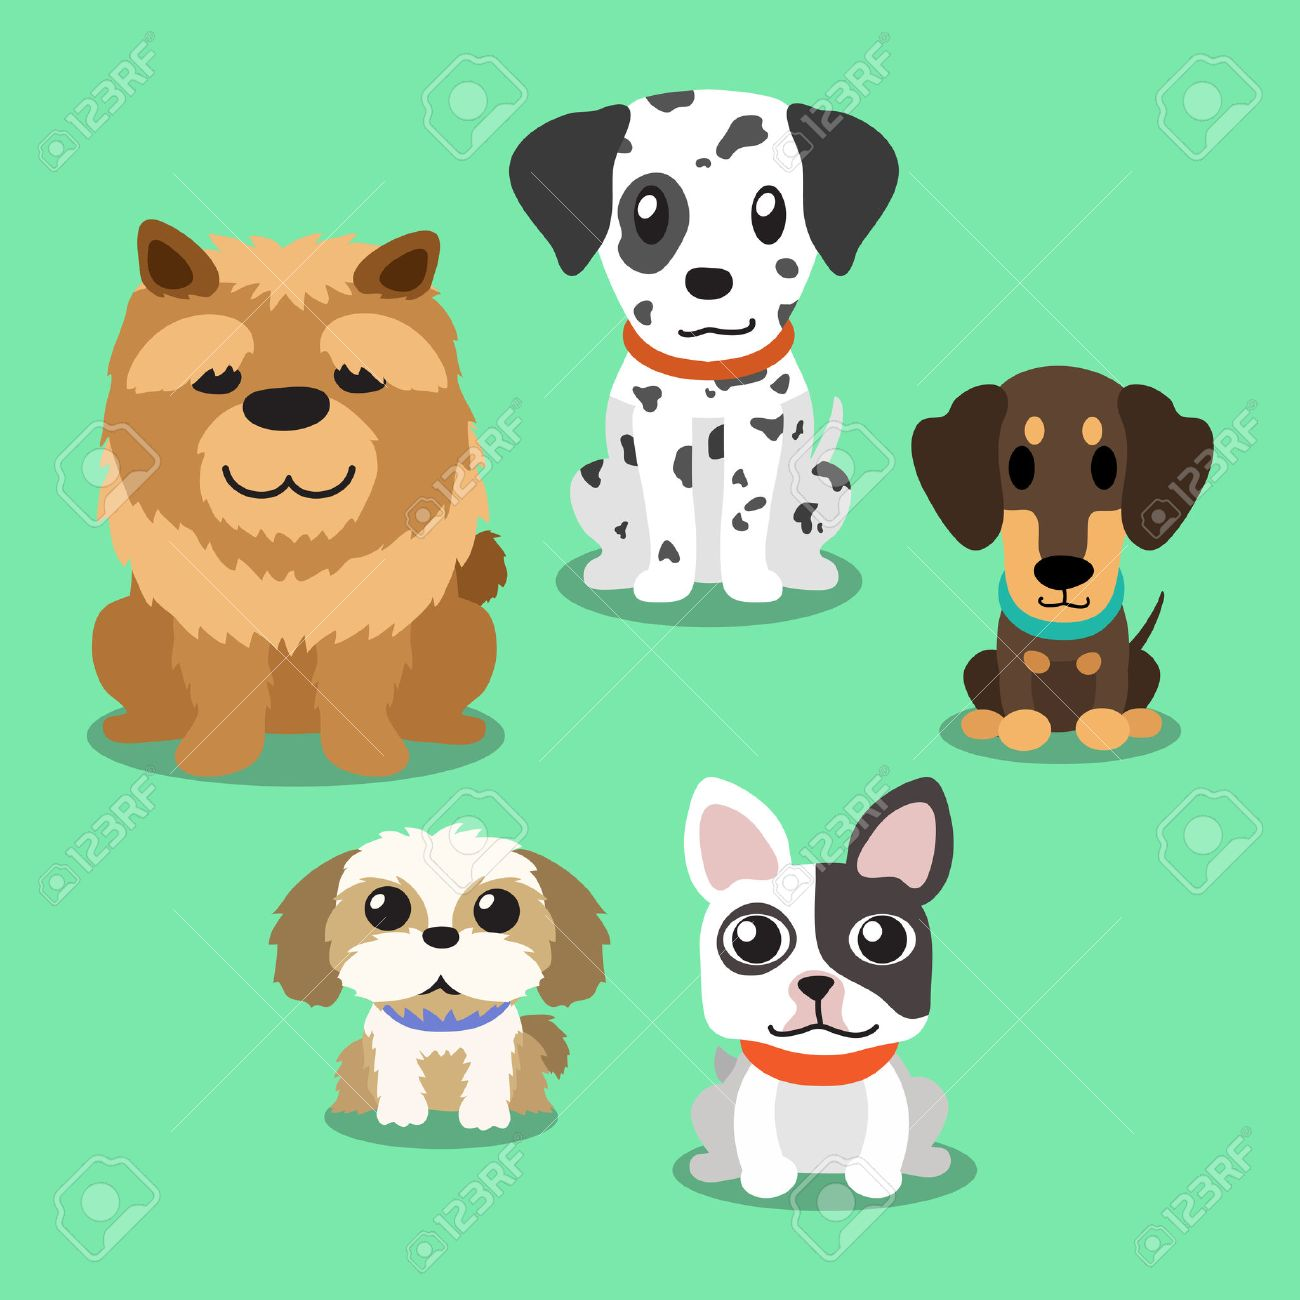 Image of: Drawing Cartoon Dogs Standing Stock Vector 48211276 123rfcom Cartoon Dogs Standing Royalty Free Cliparts Vectors And Stock